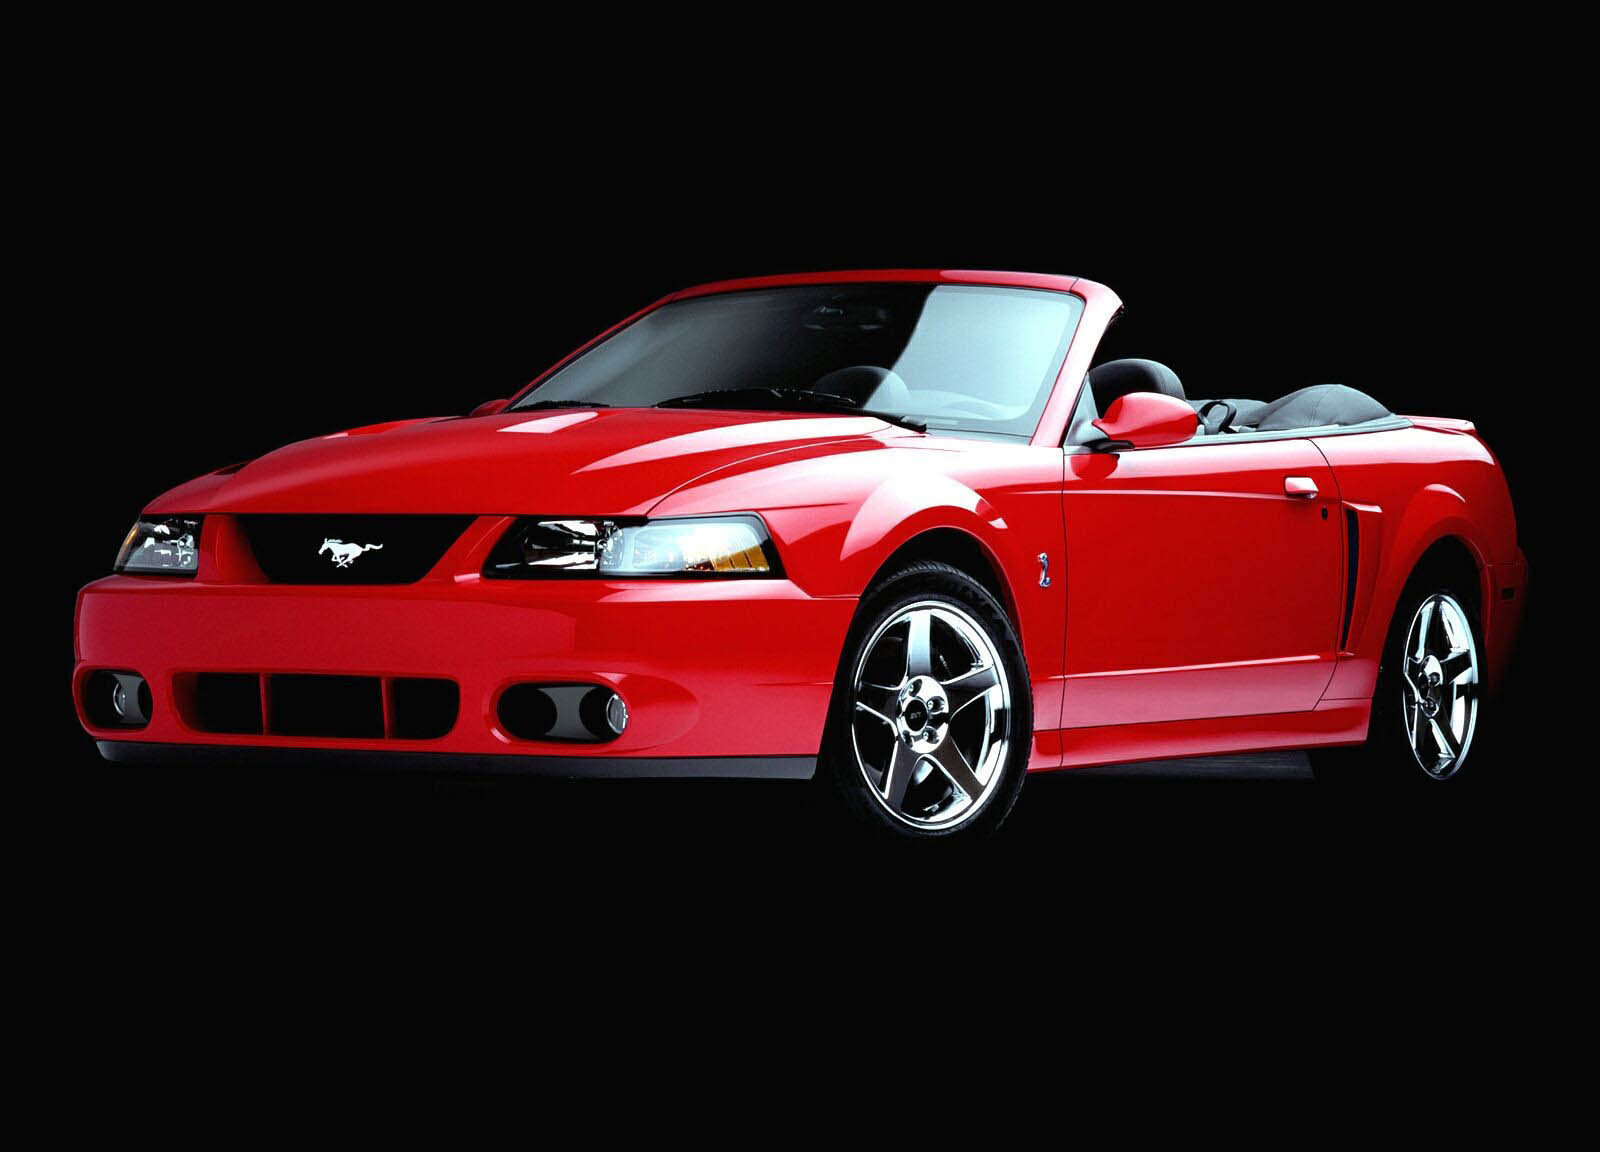 2003 ford mustang cobra picture 5296 car review top. Black Bedroom Furniture Sets. Home Design Ideas